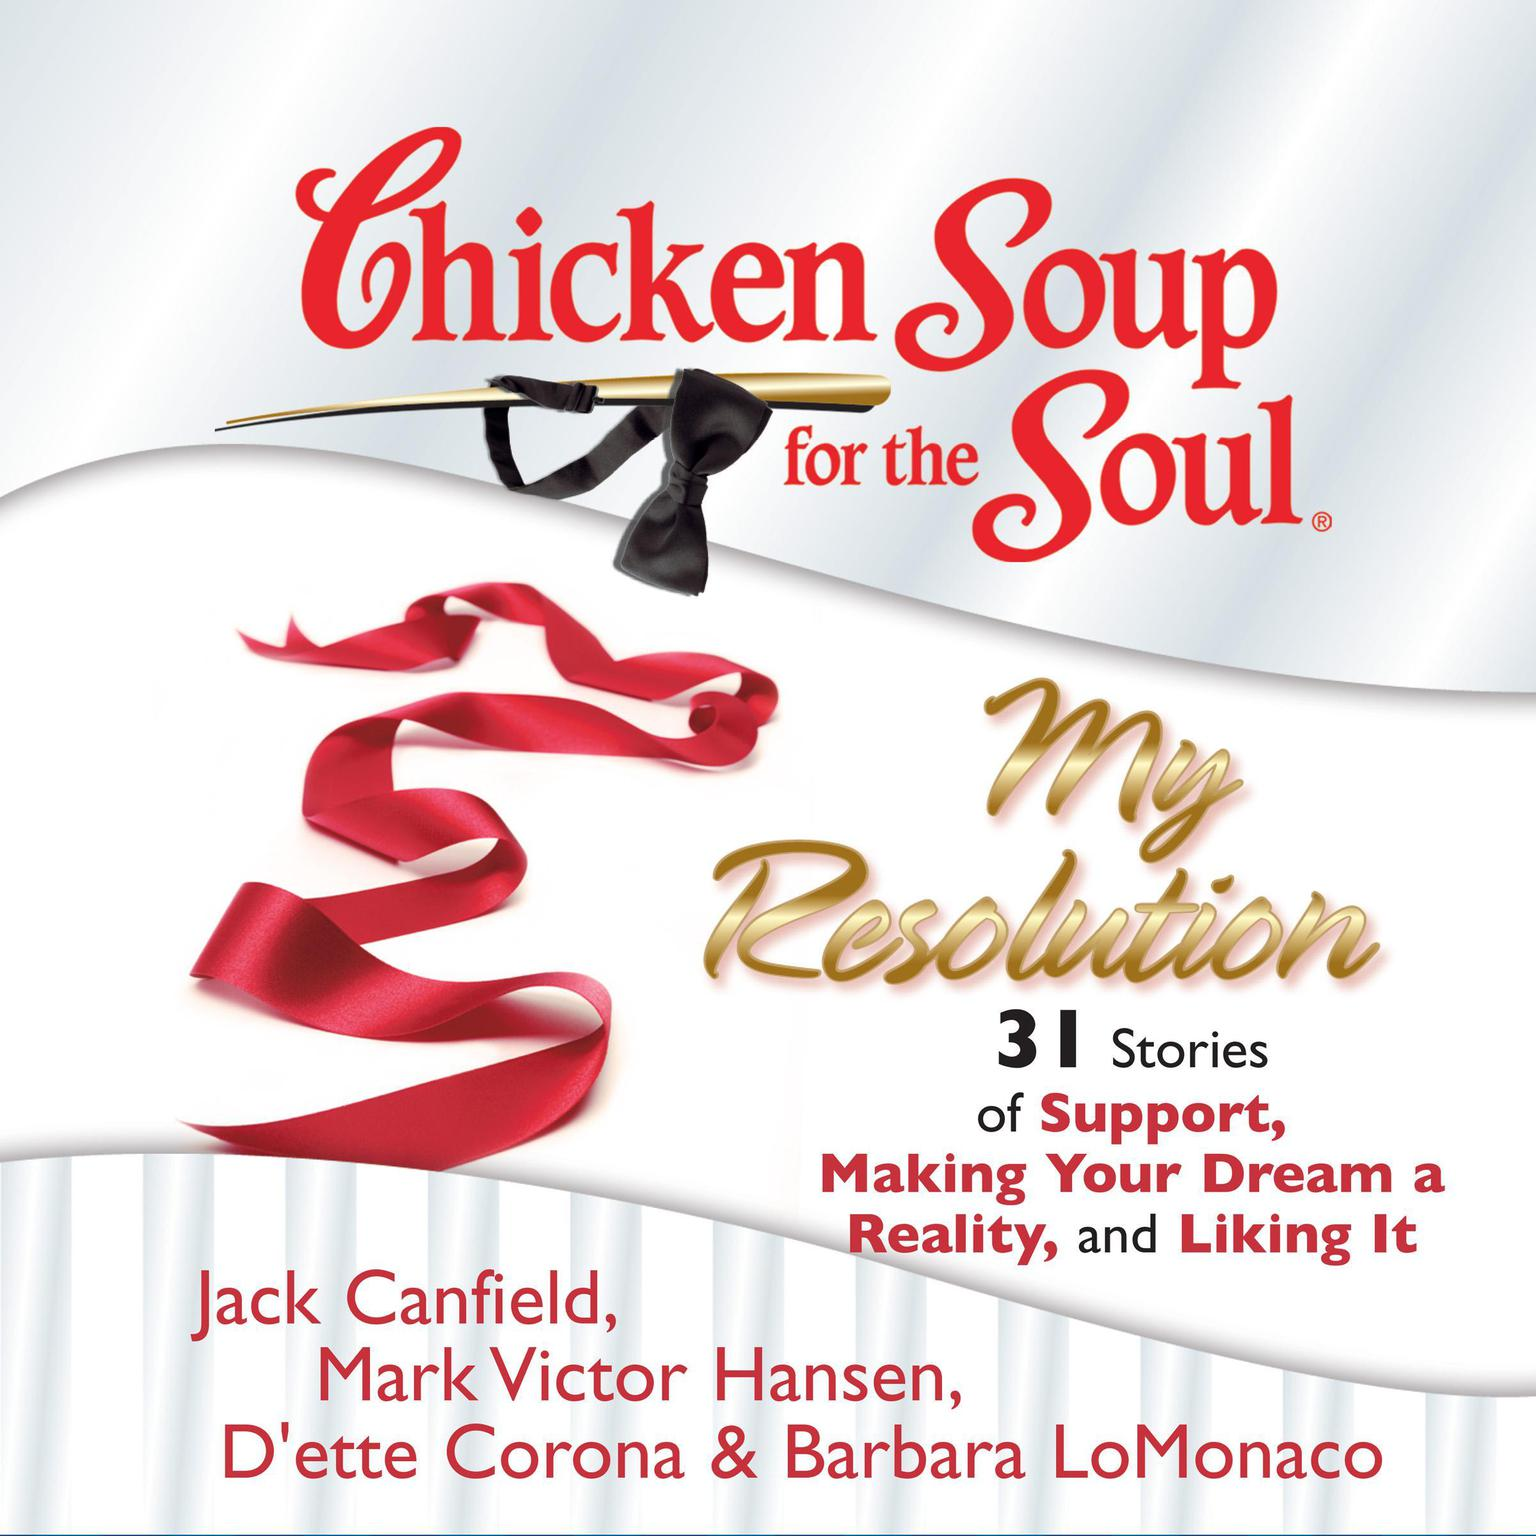 Chicken Soup for the Soul: My Resolution - 31 Stories of Support, Making  Your